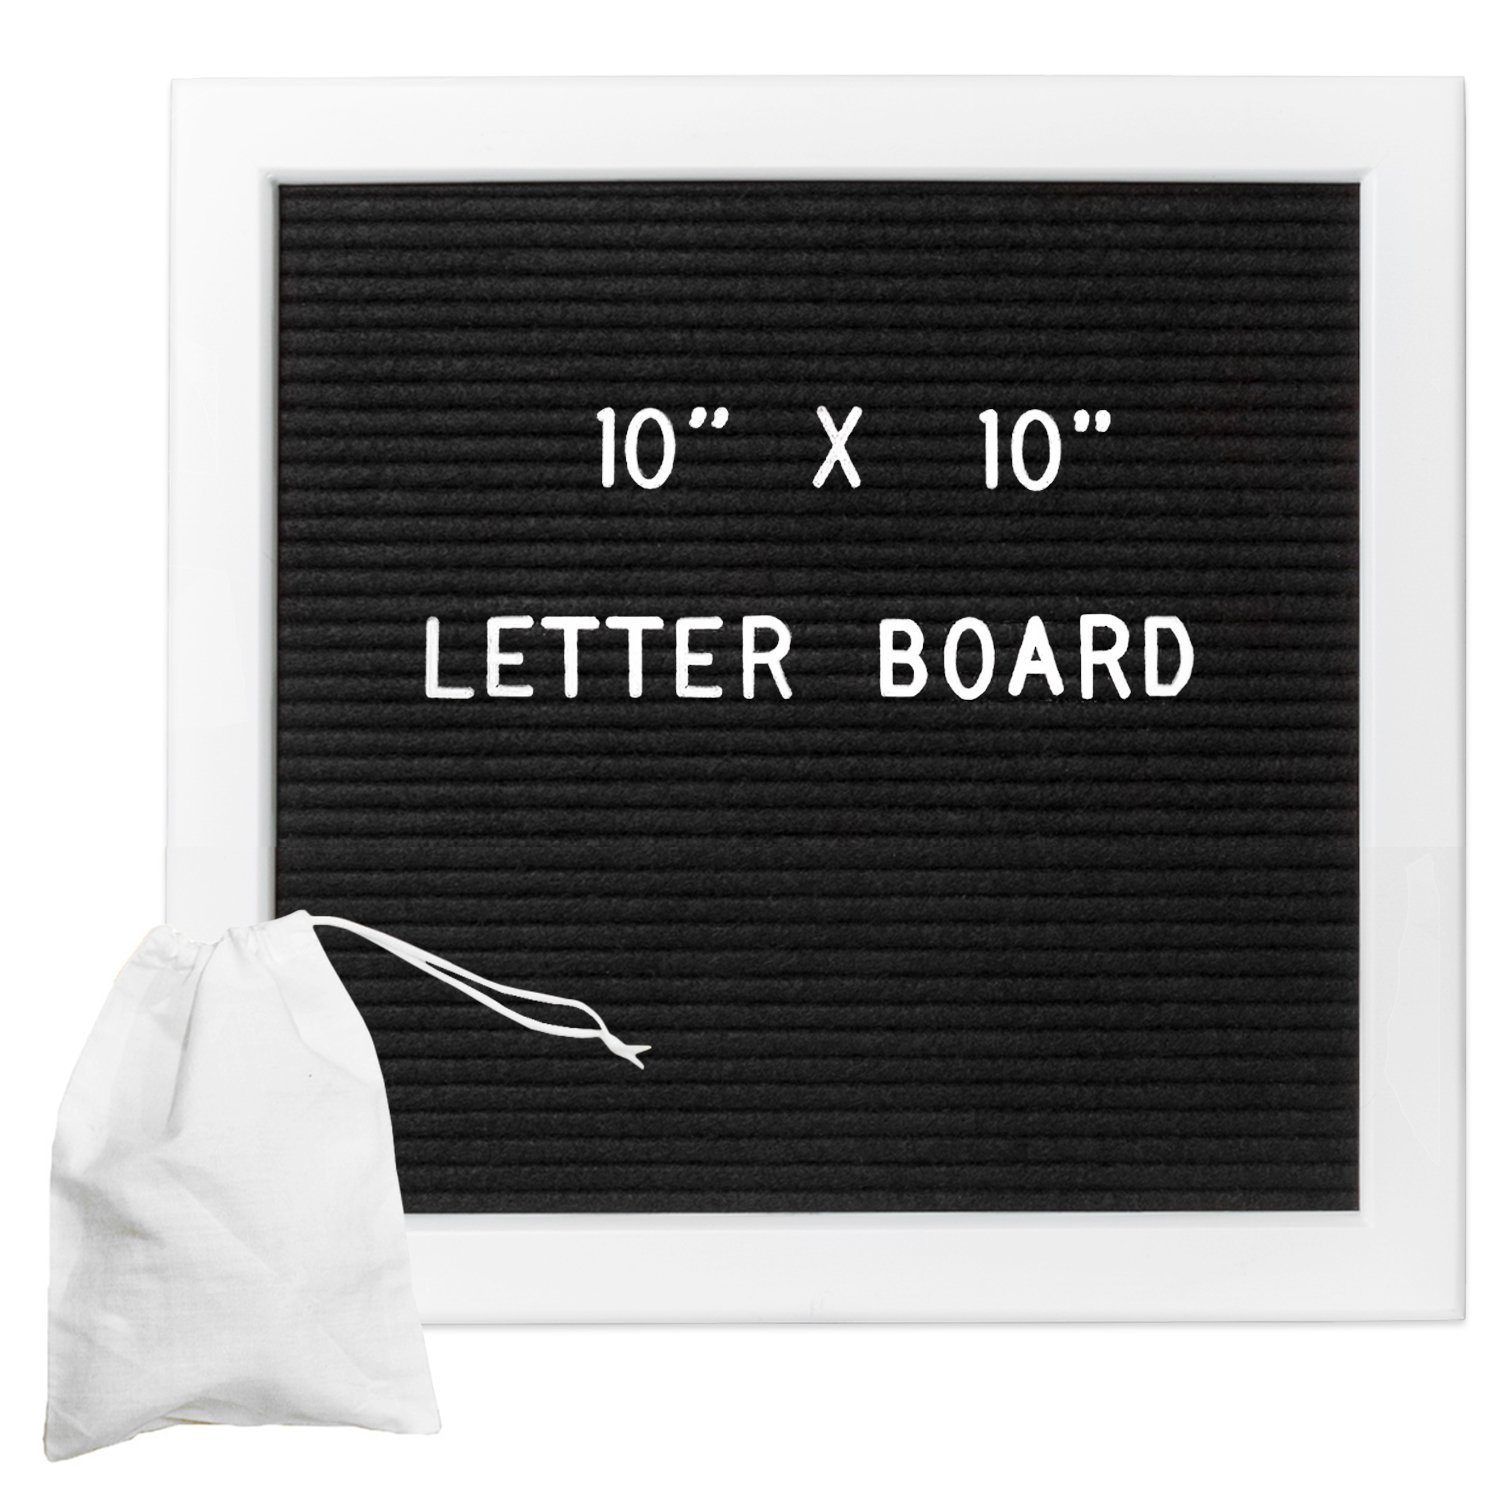 Felt Letter Board with 308 Letters, Numbers & Symbols - White Framed 10x10 Inch Changeable Message Board with Oak Wooden Frame,Plus Free Letter Bag